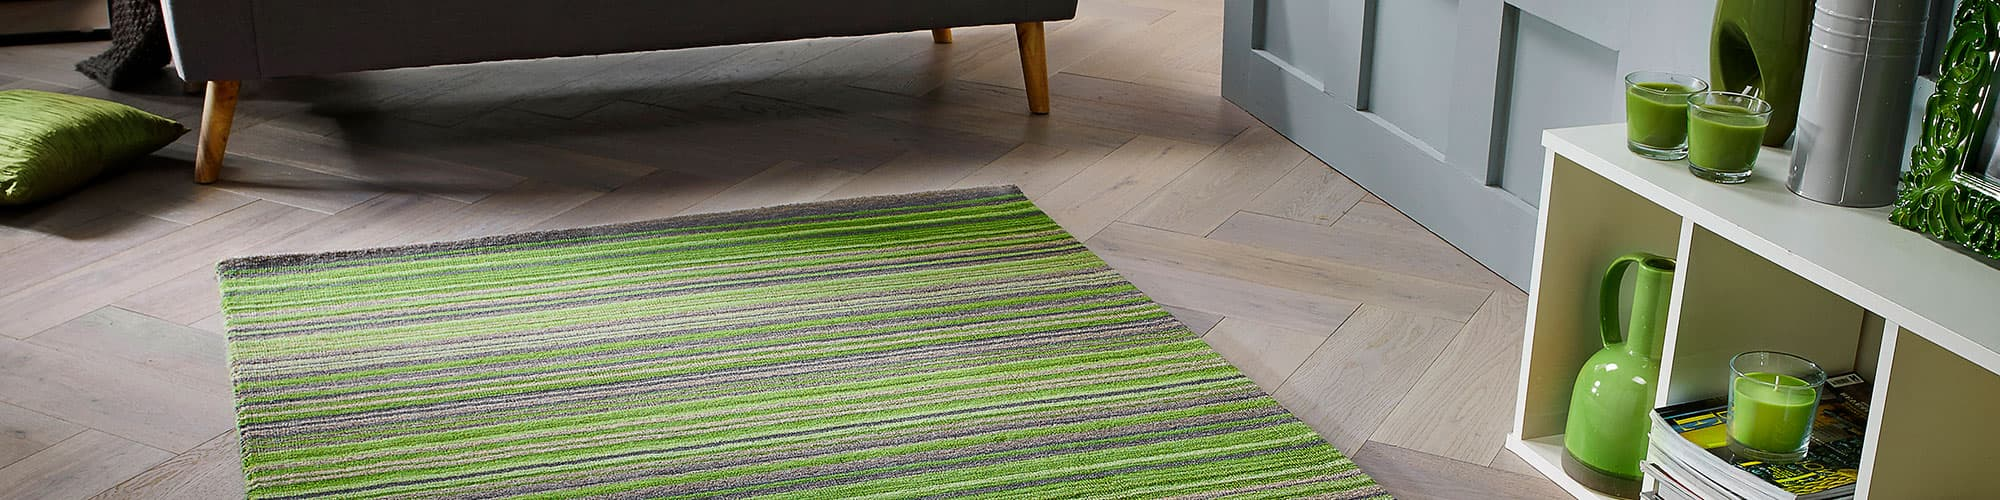 Flooring Rugs Carpets at Associated Independent Stores